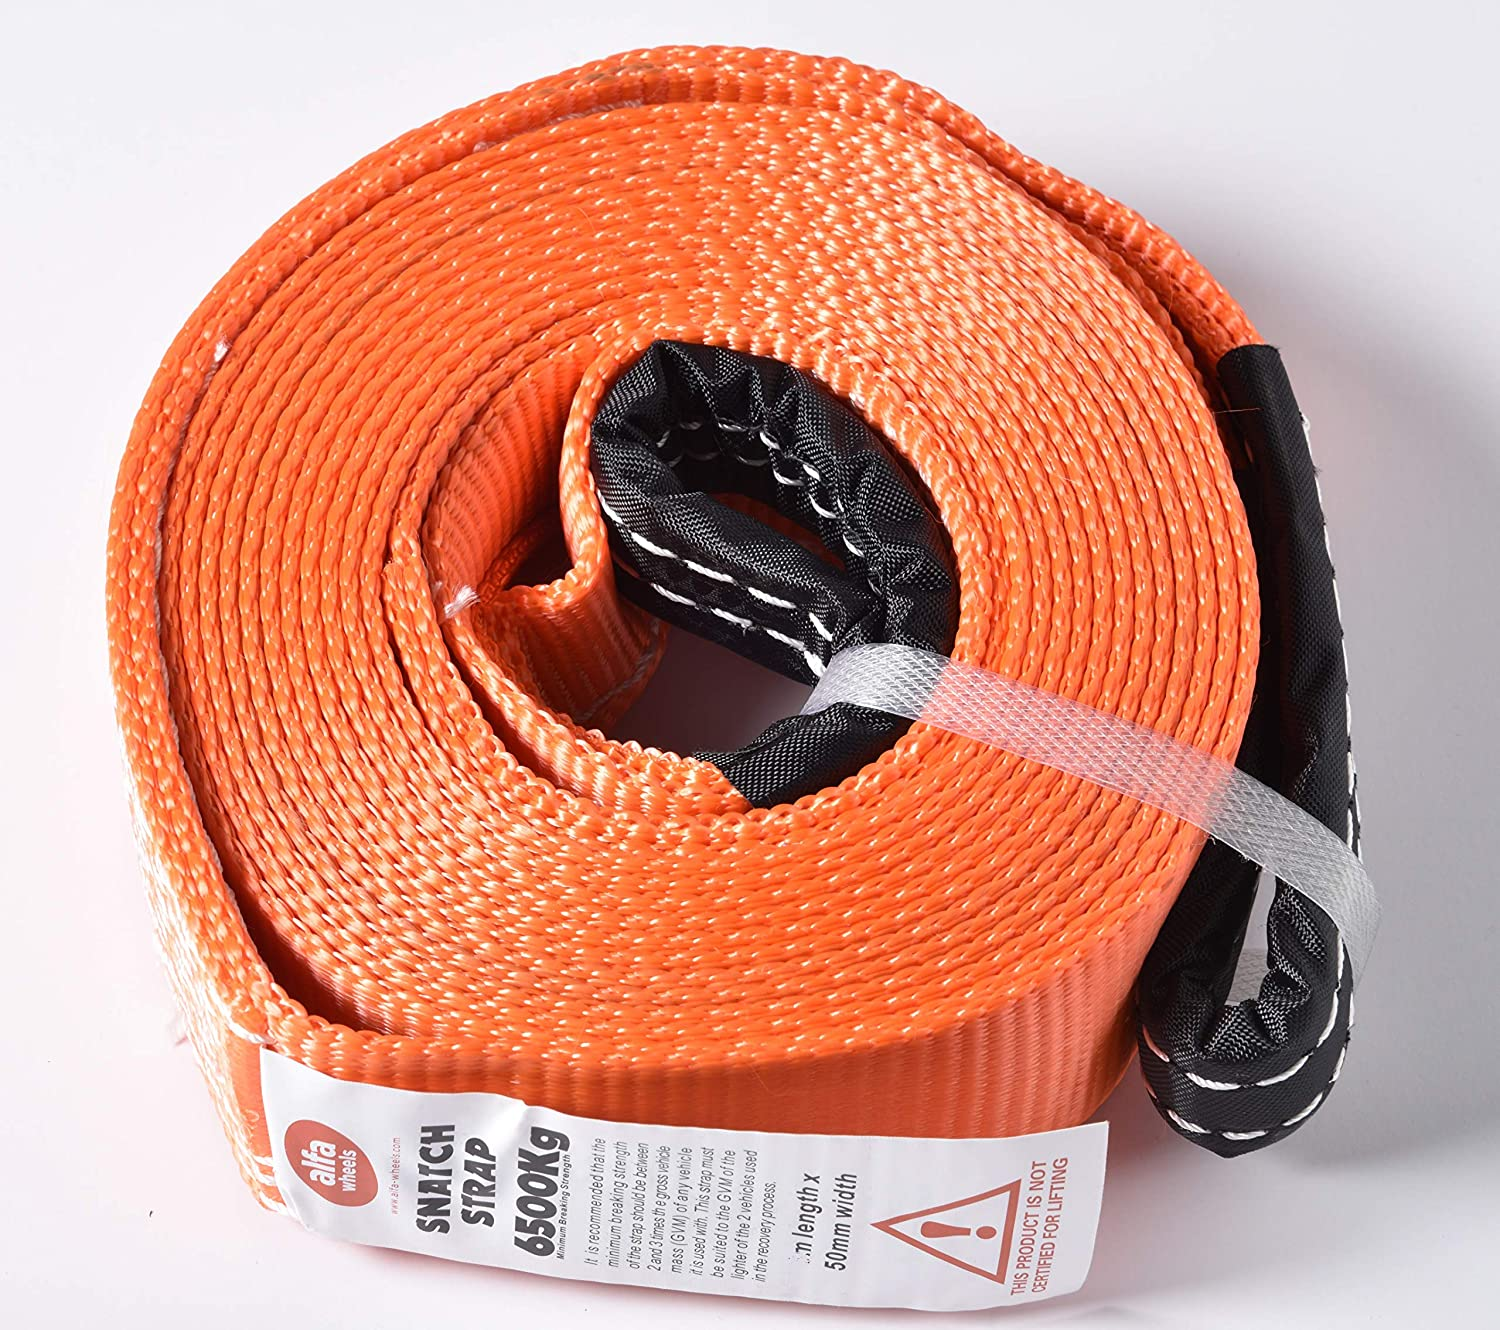 """HiGear 2"""" X 30', 6.5 Ton 2 Inch X 30 Ft. Polyester Tow Strap Rope 2 Loops 14,000lb Towing Recovery 2x30 by Alfa Wheels (Orange, 2in 30ft 2x30)"""